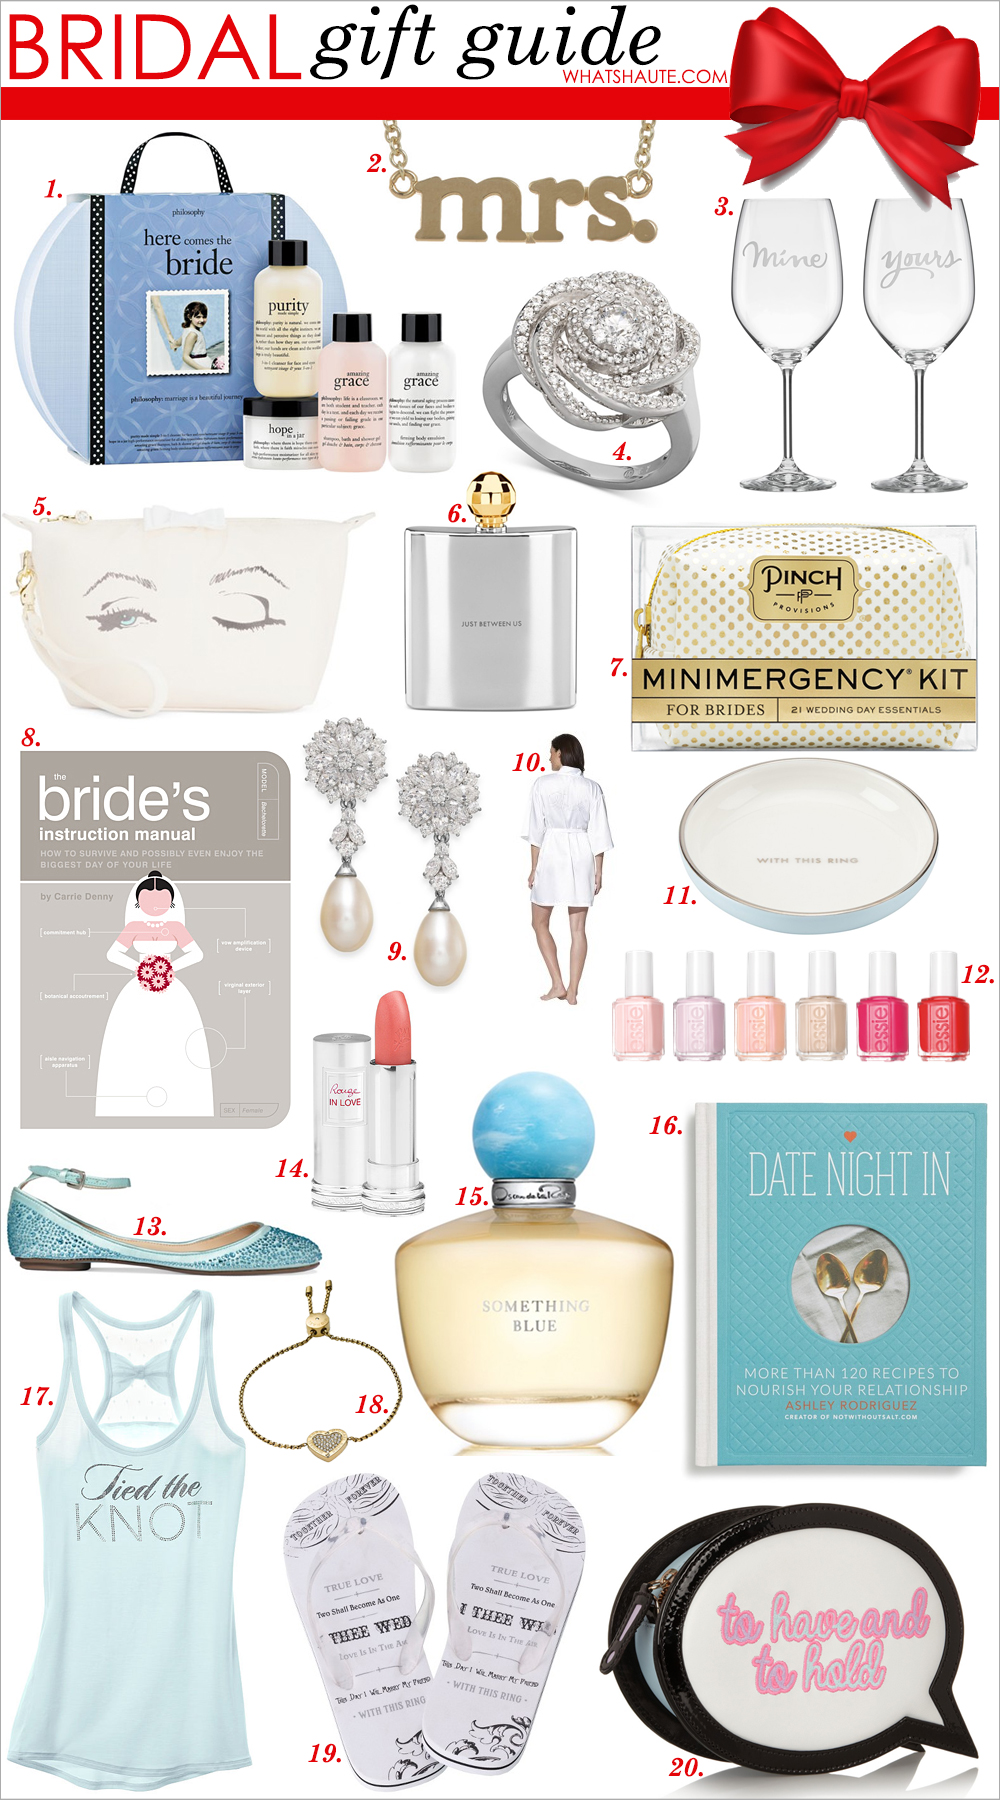 Wedding Gift Guide : Holiday 2015Bridal Gift Guide: philosophy here comes the bride ...